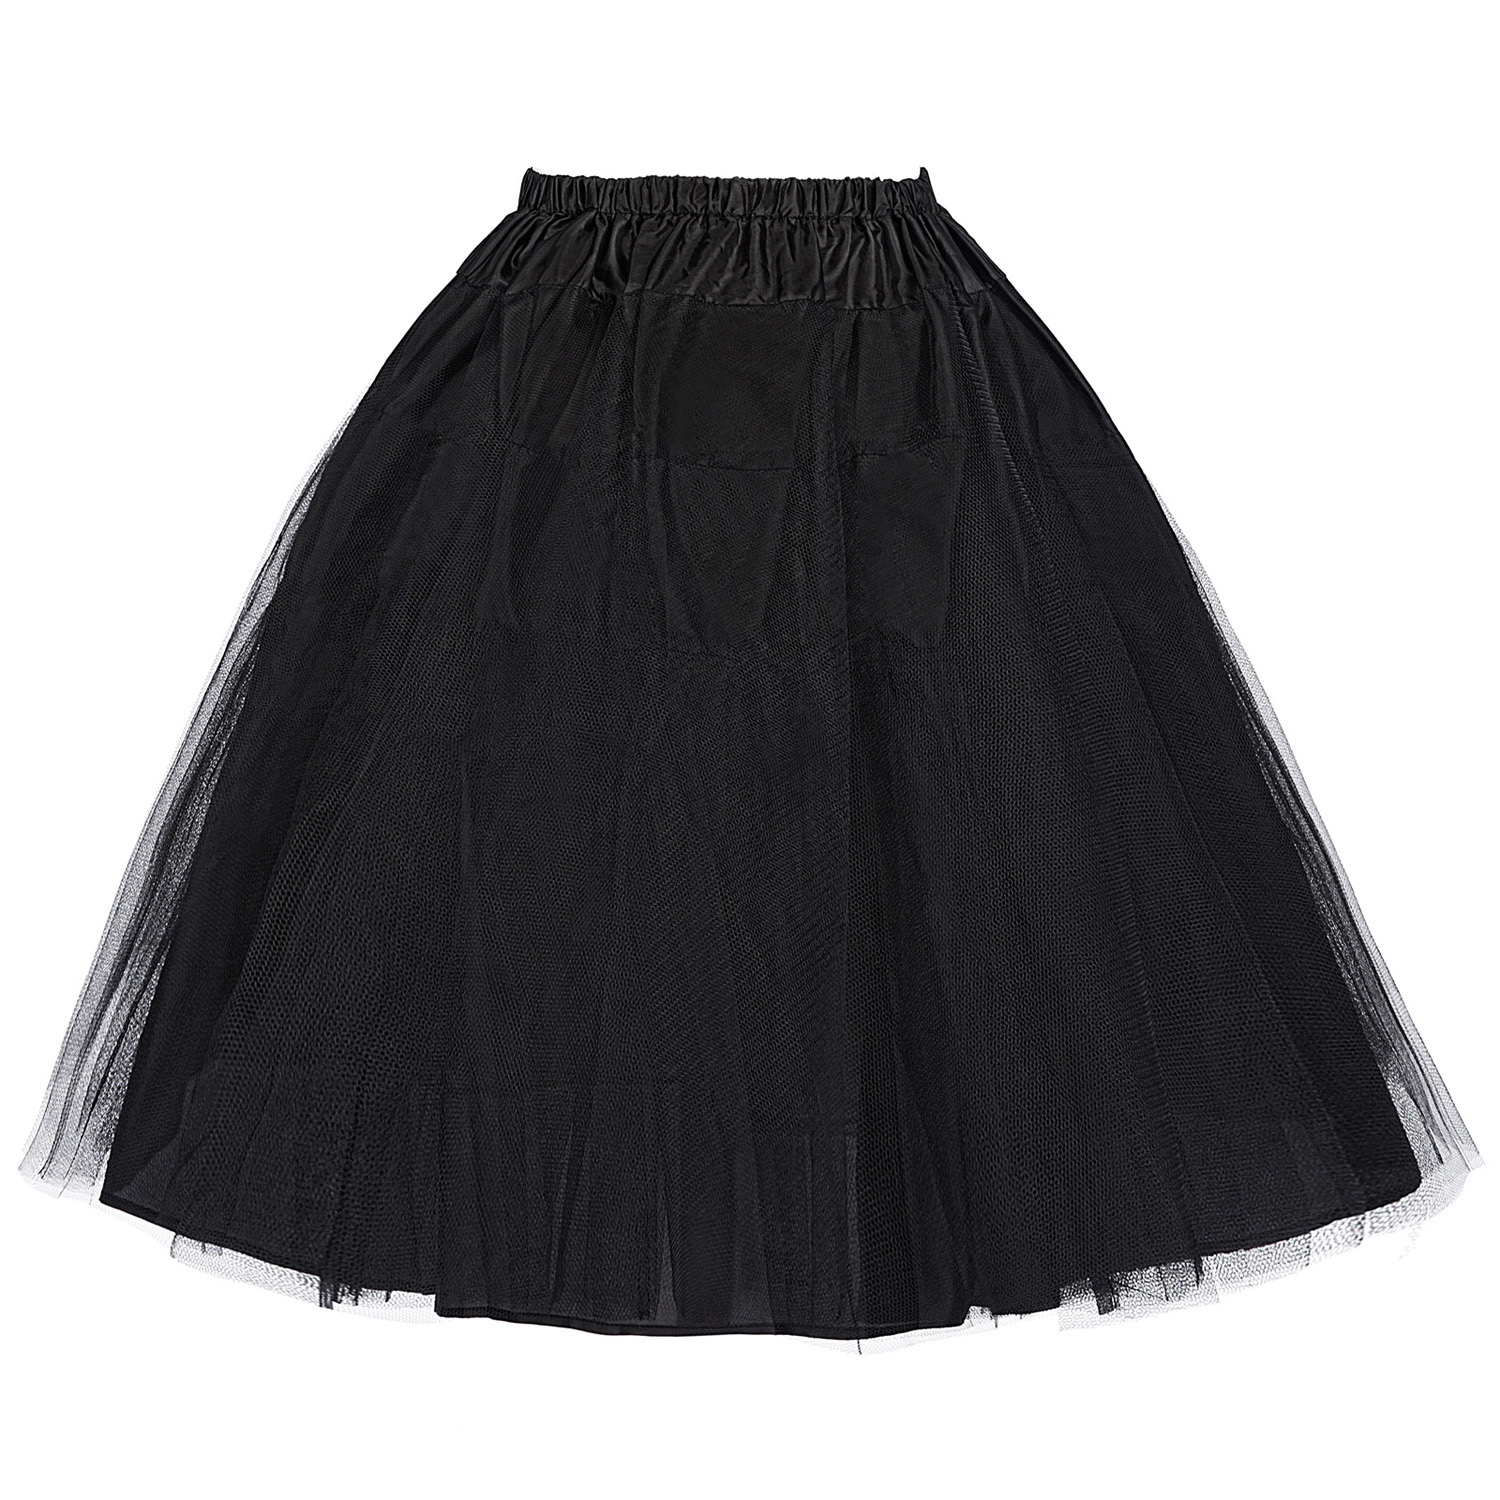 Women Red Black Purple Green Retro Vintage Skirt Mini Crinoline Petticoat Underskirt Two Layers Tulle Skirt Gonna Tulle